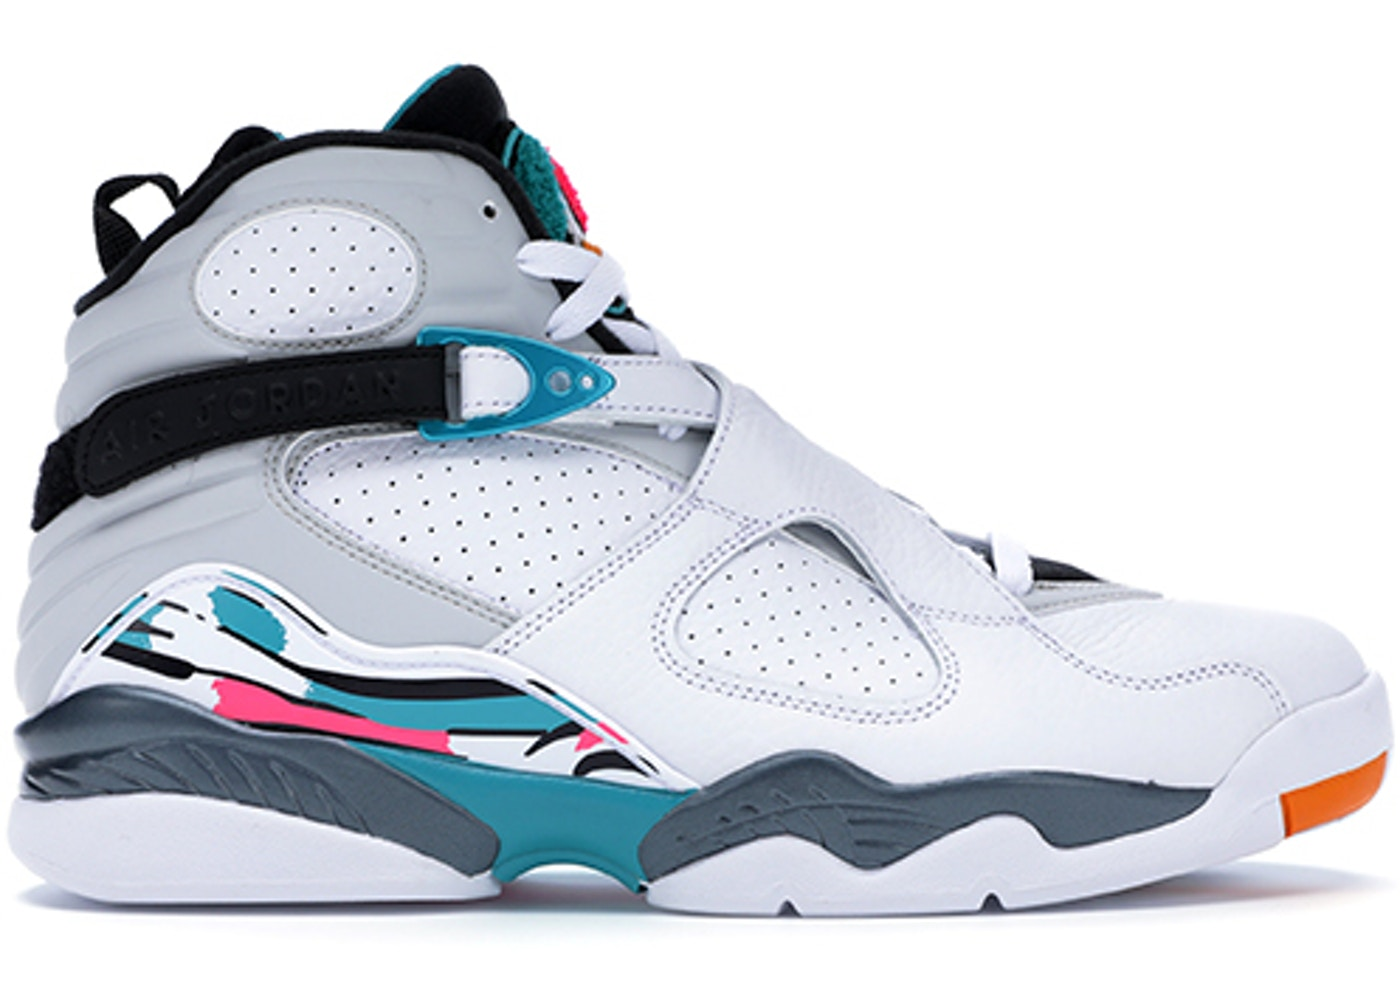 quality design ea5b3 9e0e6 Jordan 8 Retro South Beach - 305381-113